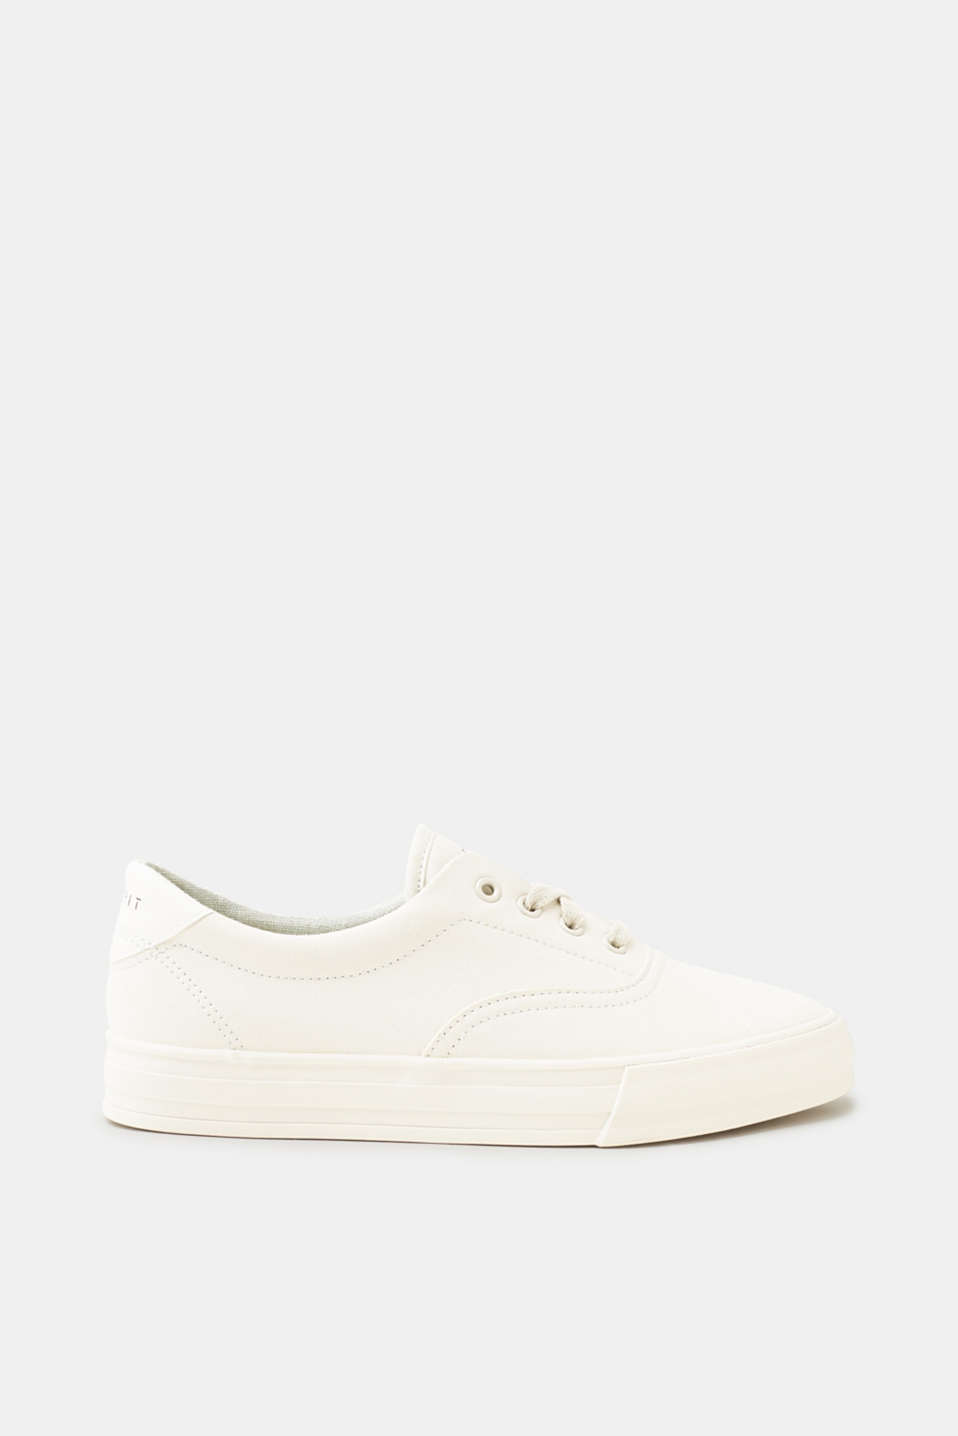 Esprit - Urban lace-up trainers with a glittery finish